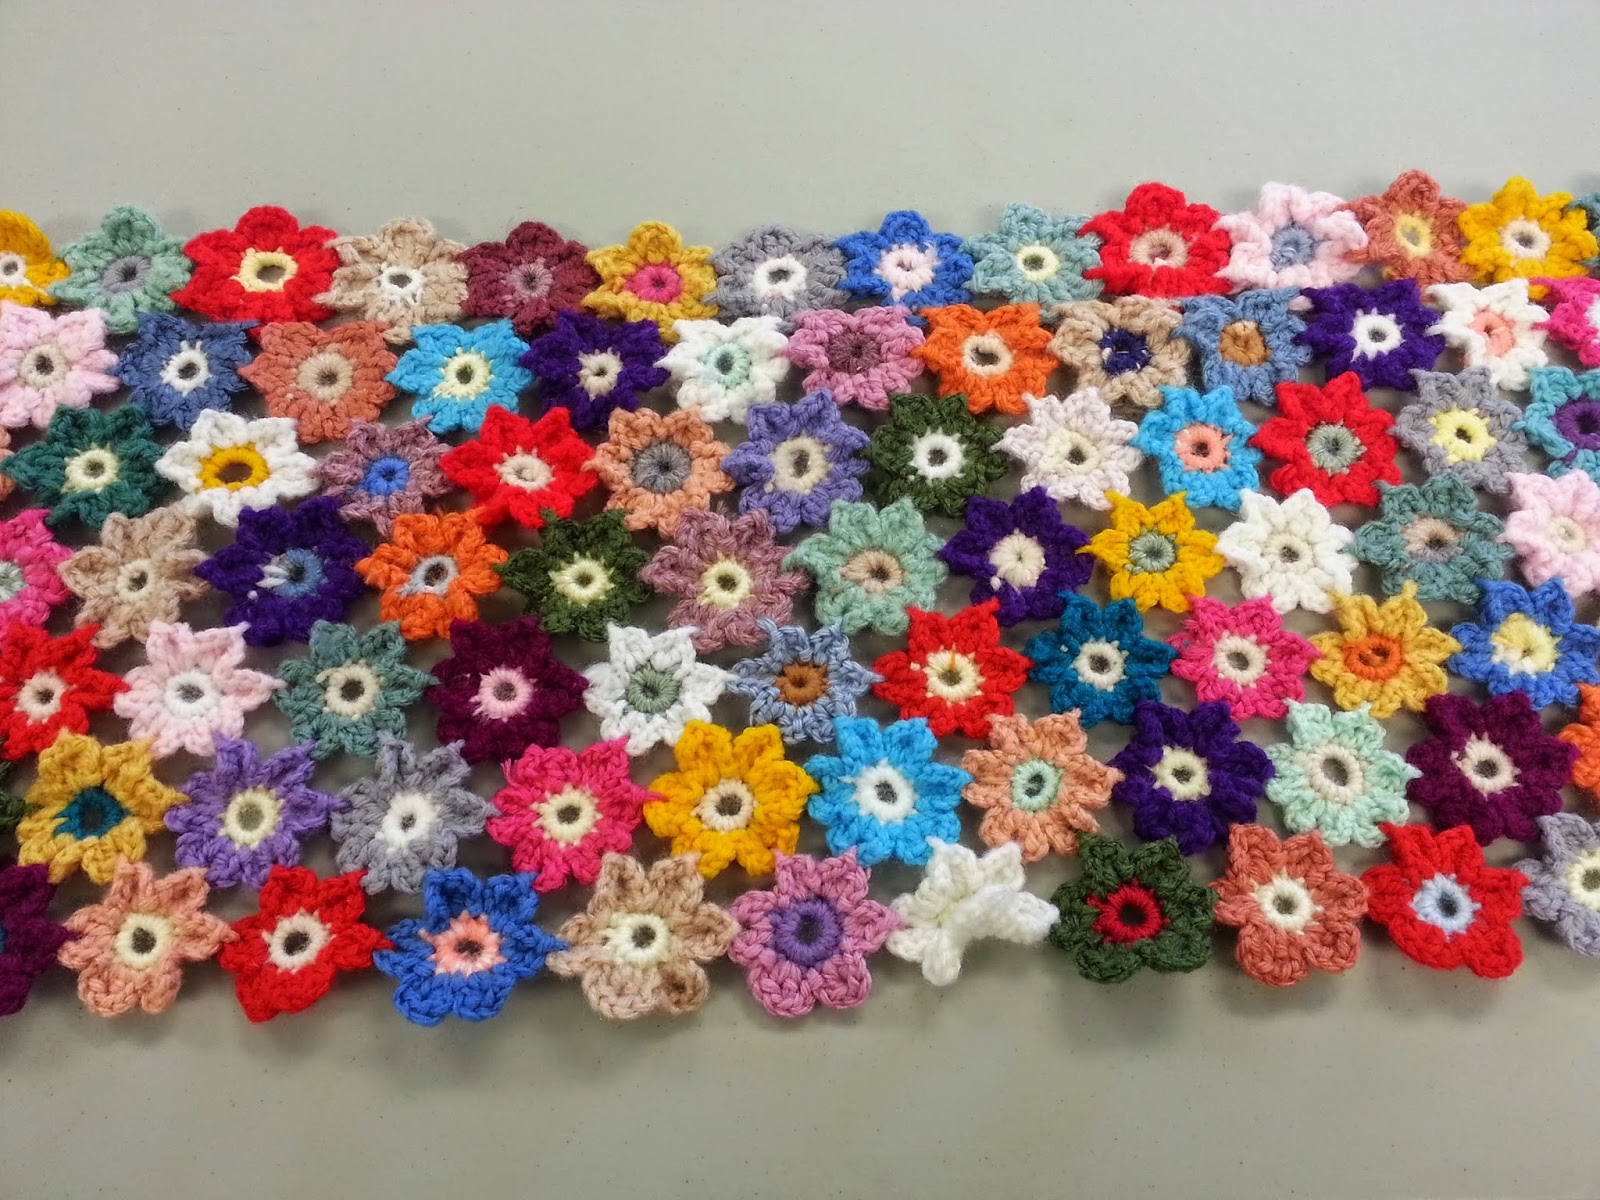 Crochet Flower Blanket : Lilly My Cat: Crochet Flower Blanket and Queen Anne Lace